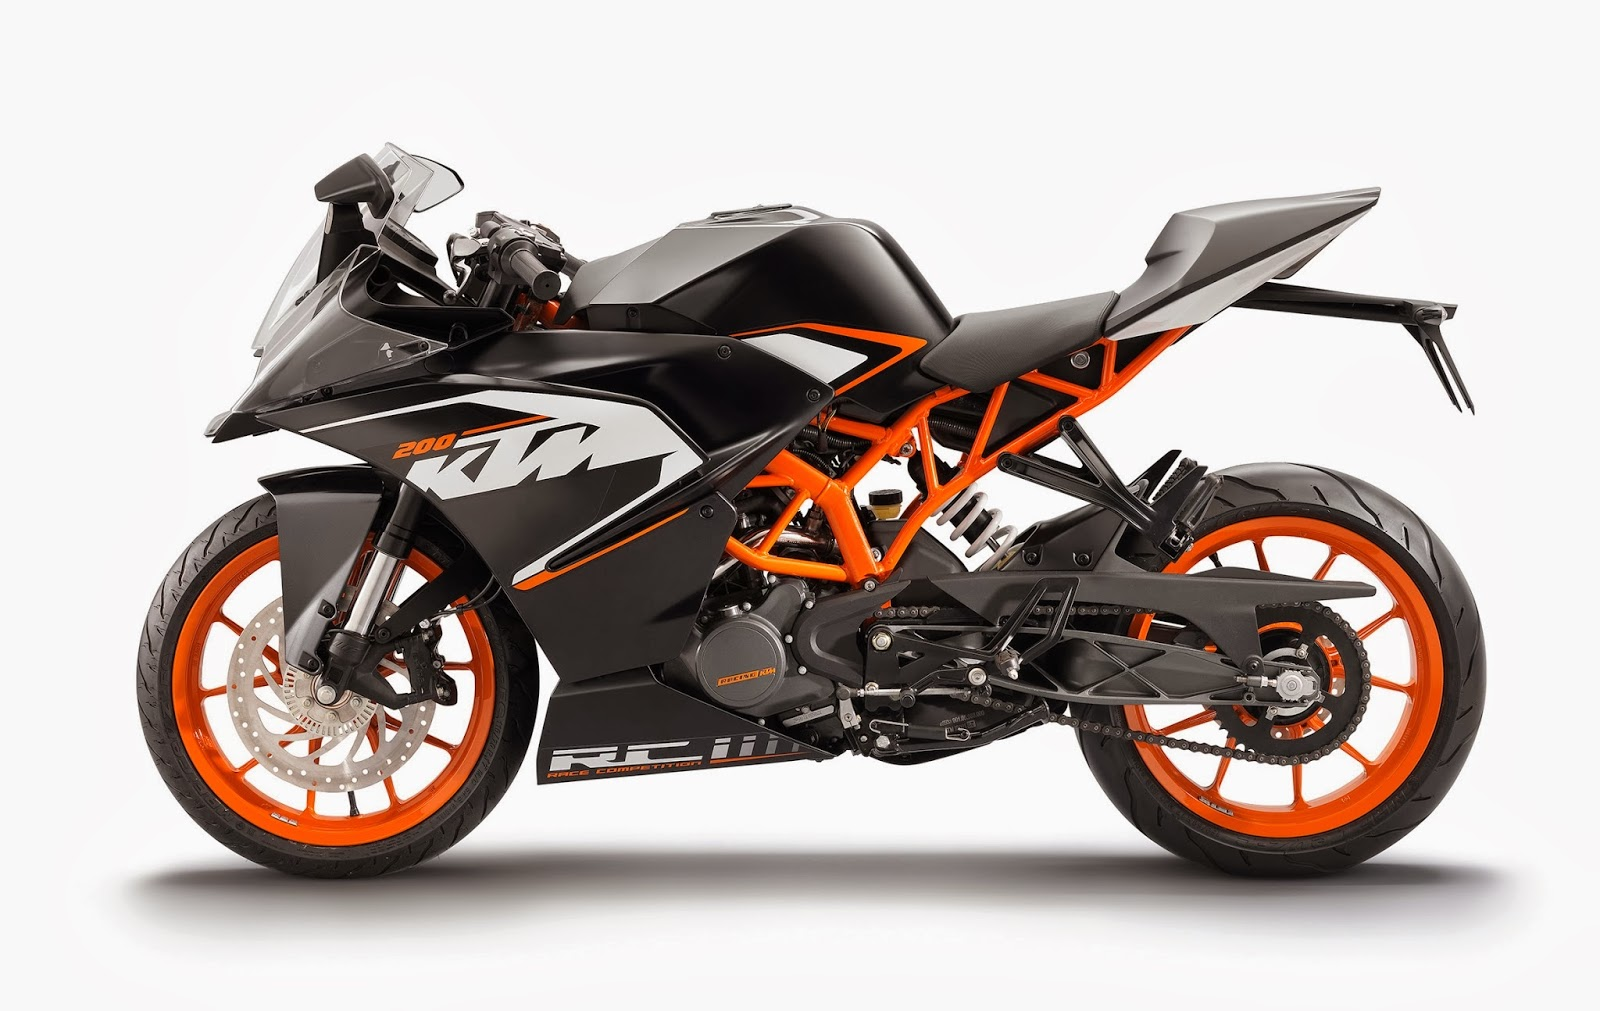 Ktm Duke 250 also Caffenero 150 moreover Yamaha Mt 07 together with Render Motorcycle Yamaha Yzr M1 2013 Valentino Rossi furthermore 2017 Ktm Duke 390 Unveiled India Lauch Price Specs Pics Features 331222. on benelli 250 white